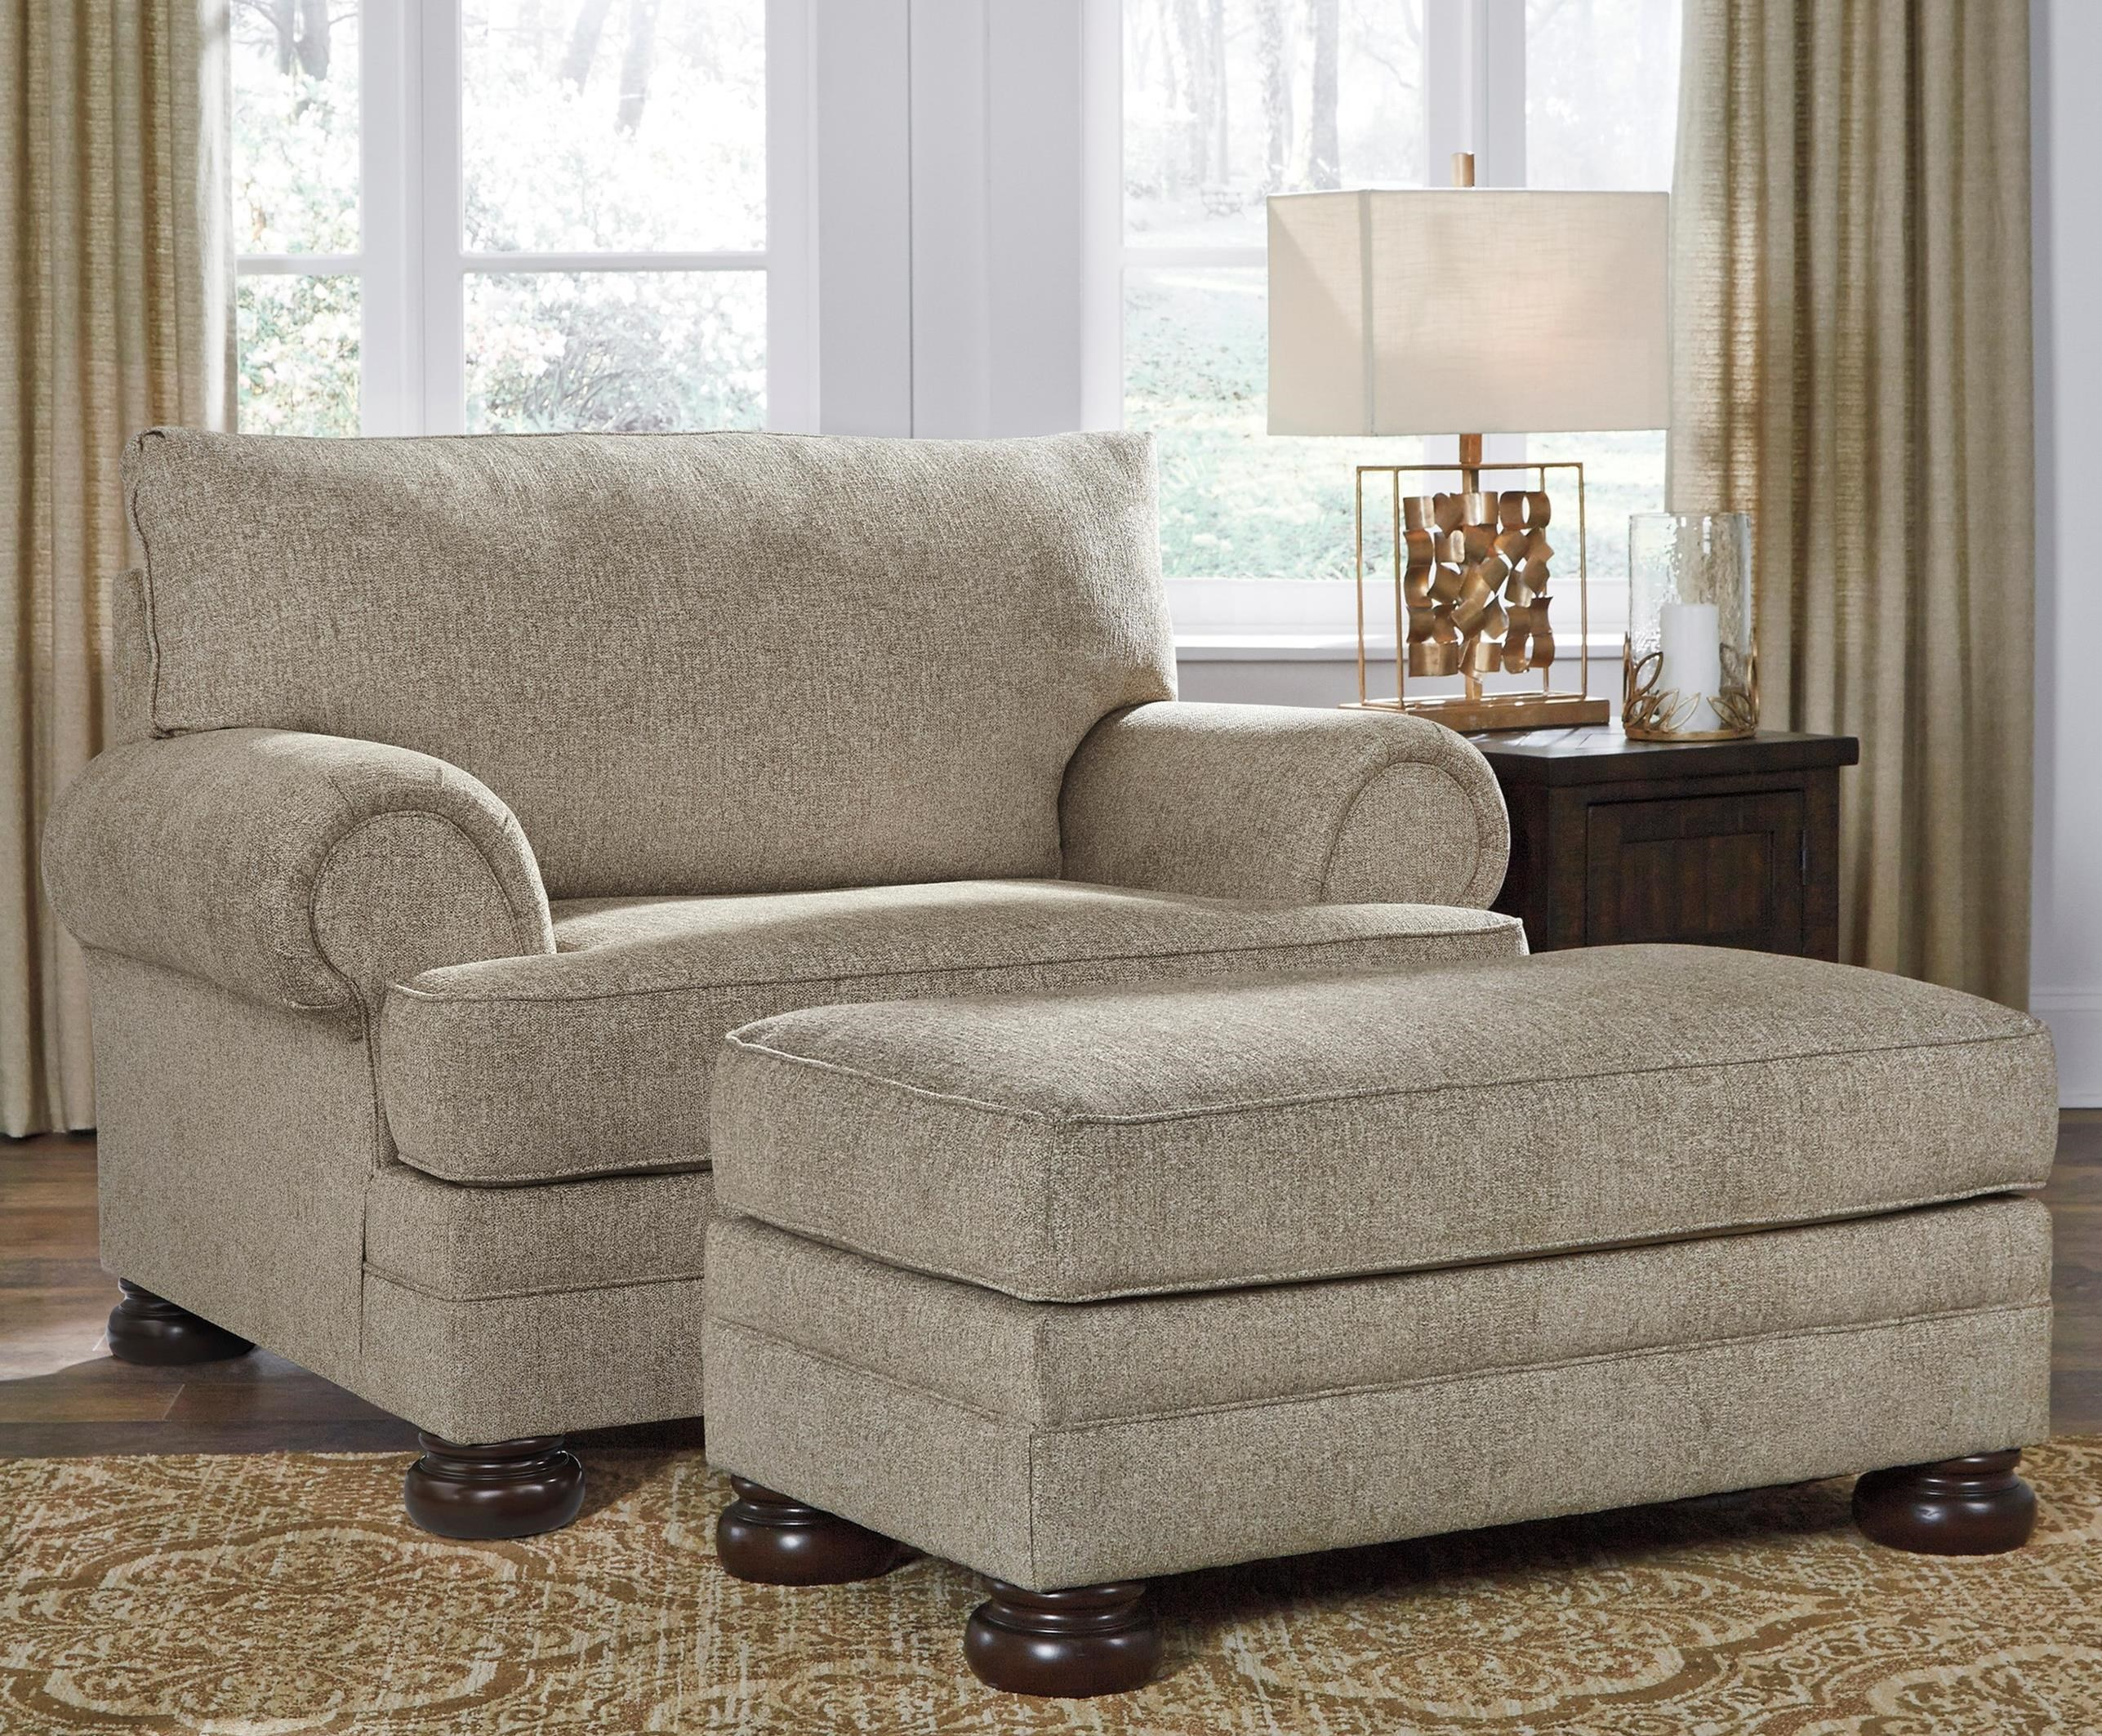 Signature Design By Ashley Kananwood Chair And A Half And Ottoman Standard Furniture Chair Ottoman Sets